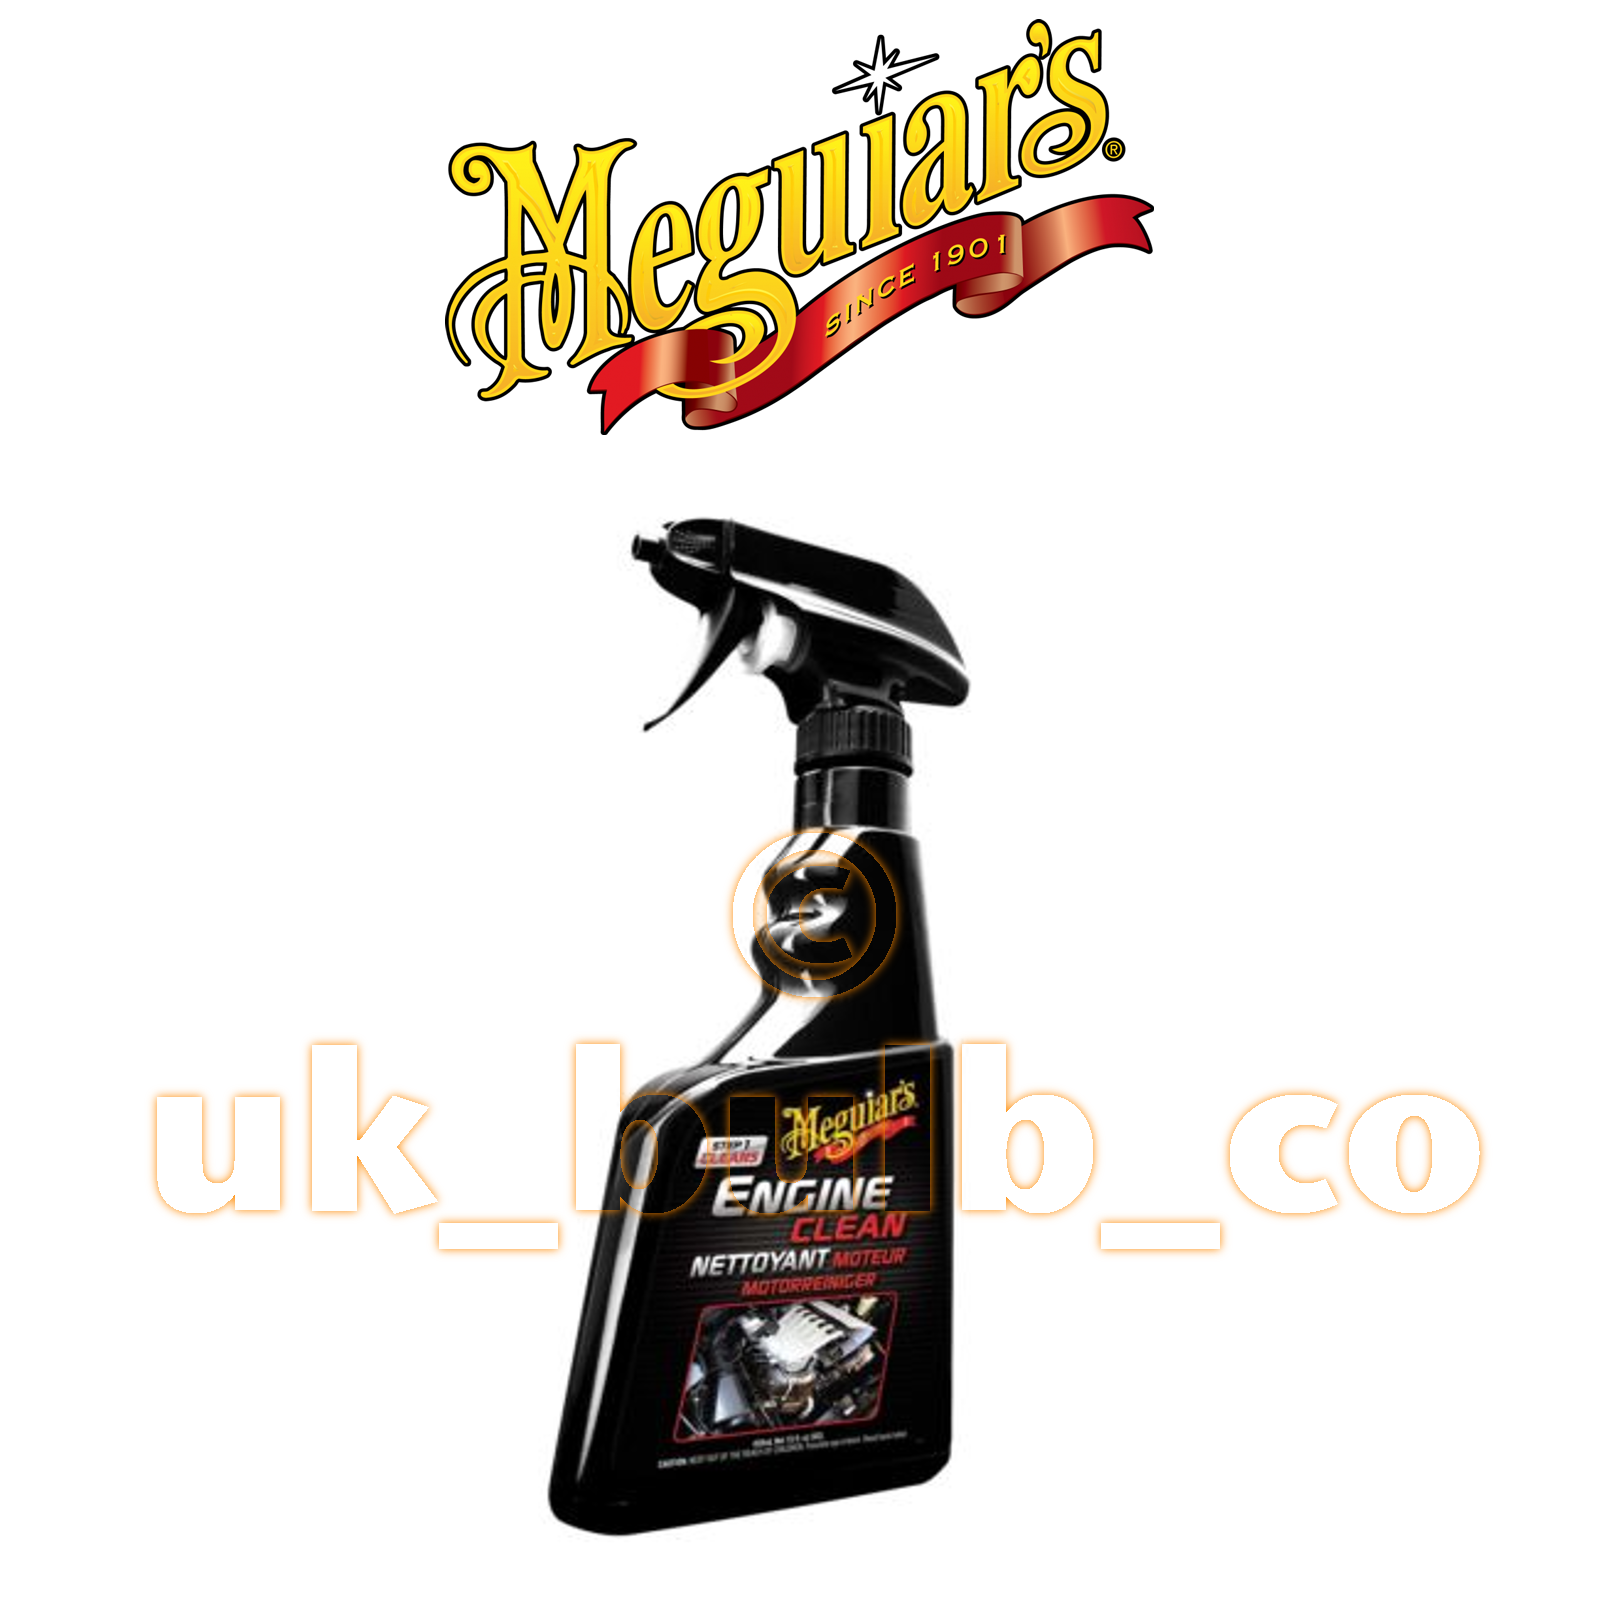 Motorcycle Engine Cleaner : Meguiars ez engine clean spray rinse motorcycle cleaner